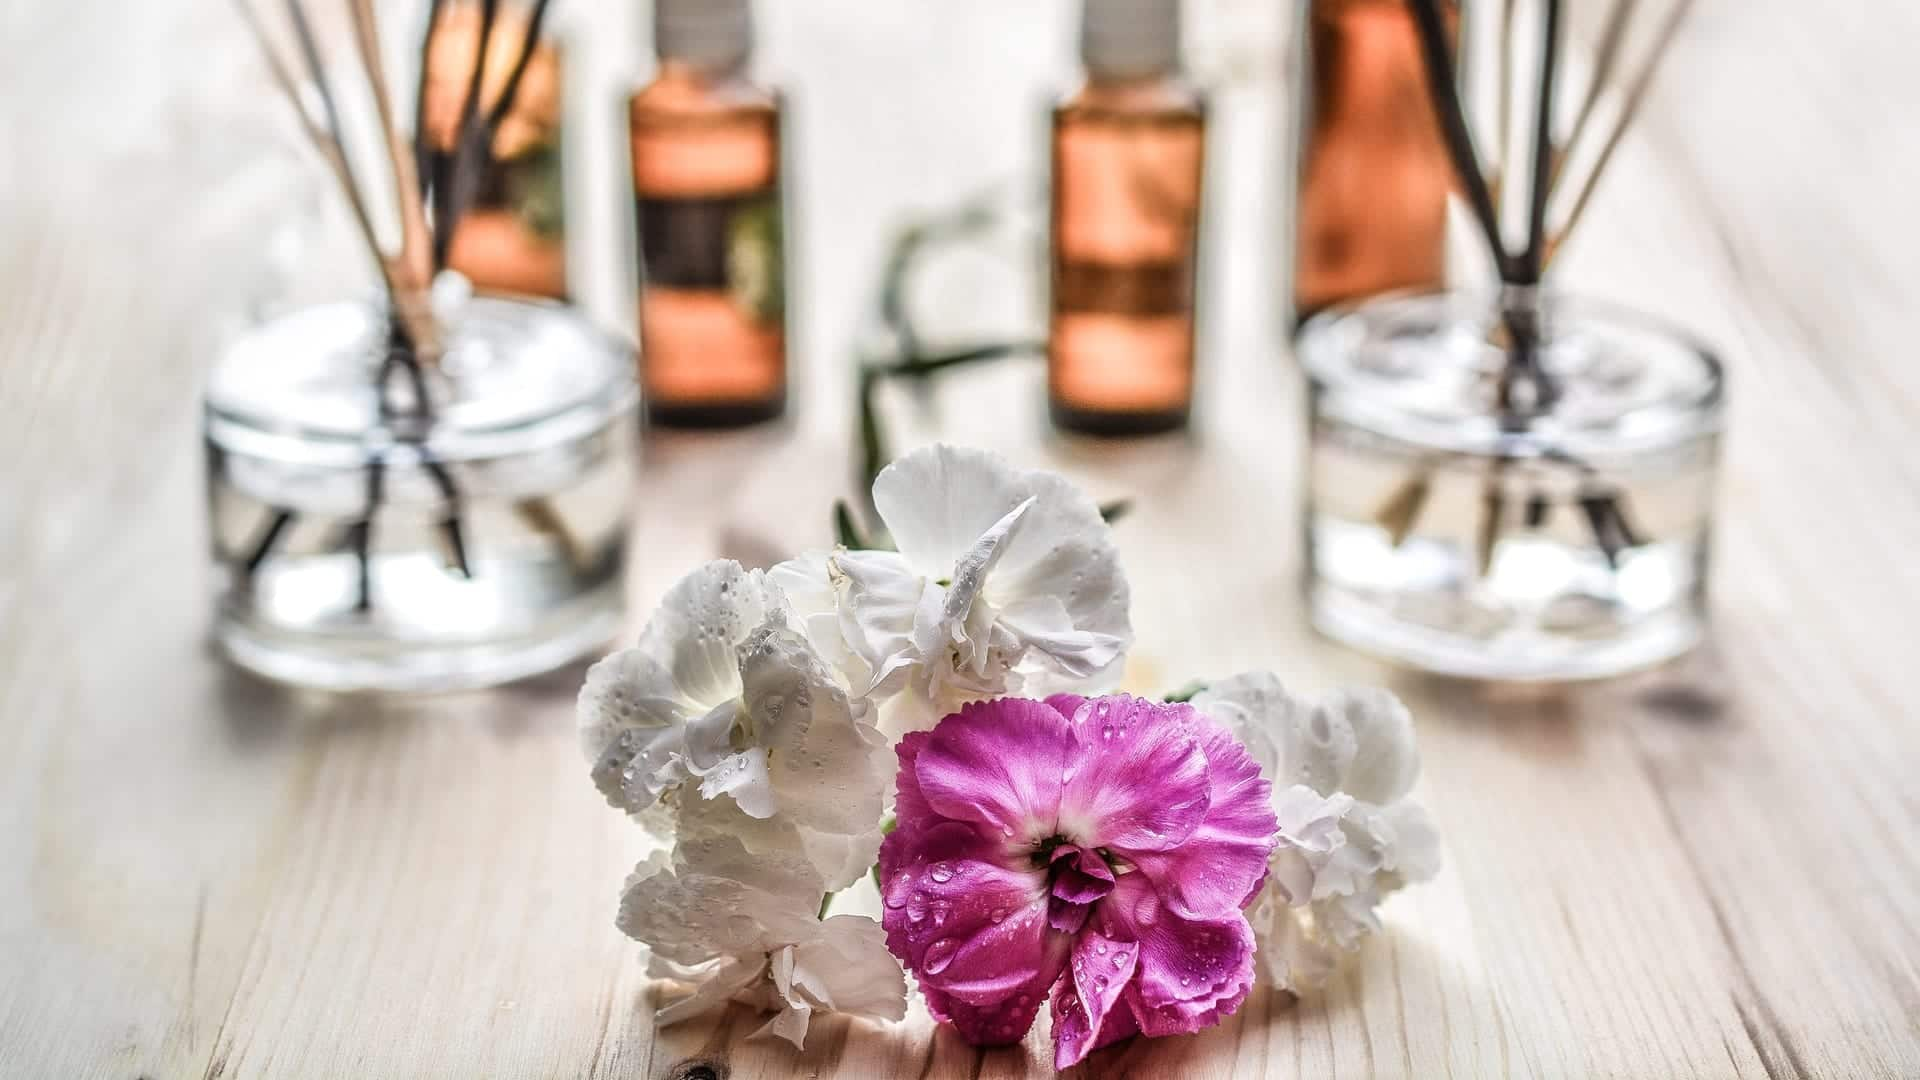 Aromatherapy For Drug & Alcohol Addictions